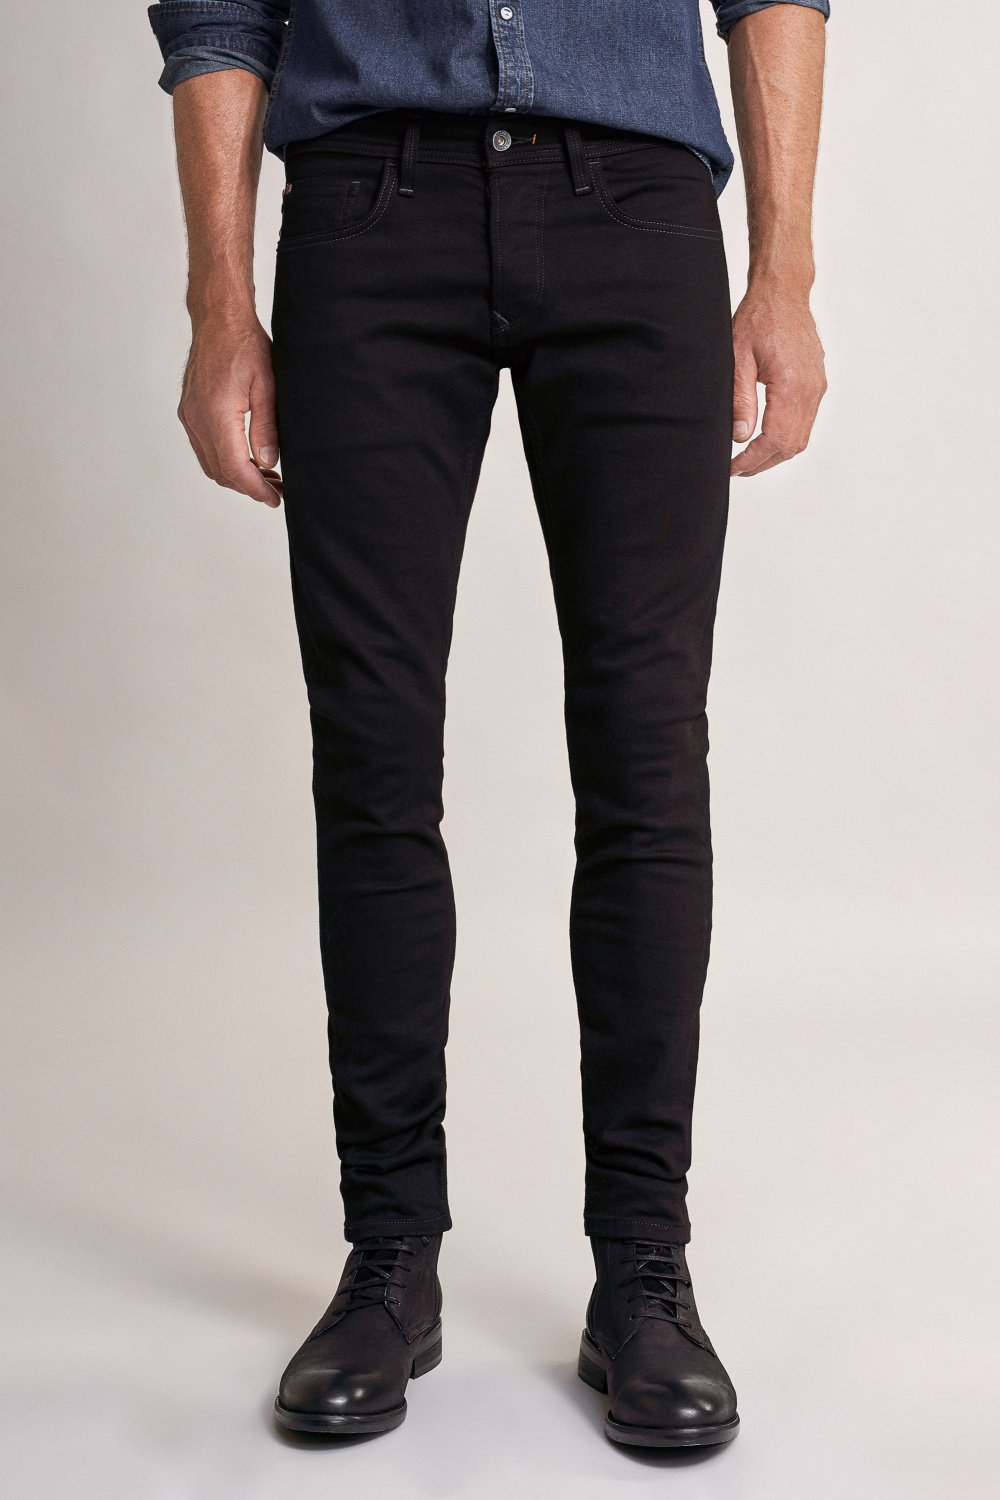 Jeans Clash skinny noirs - Salsa